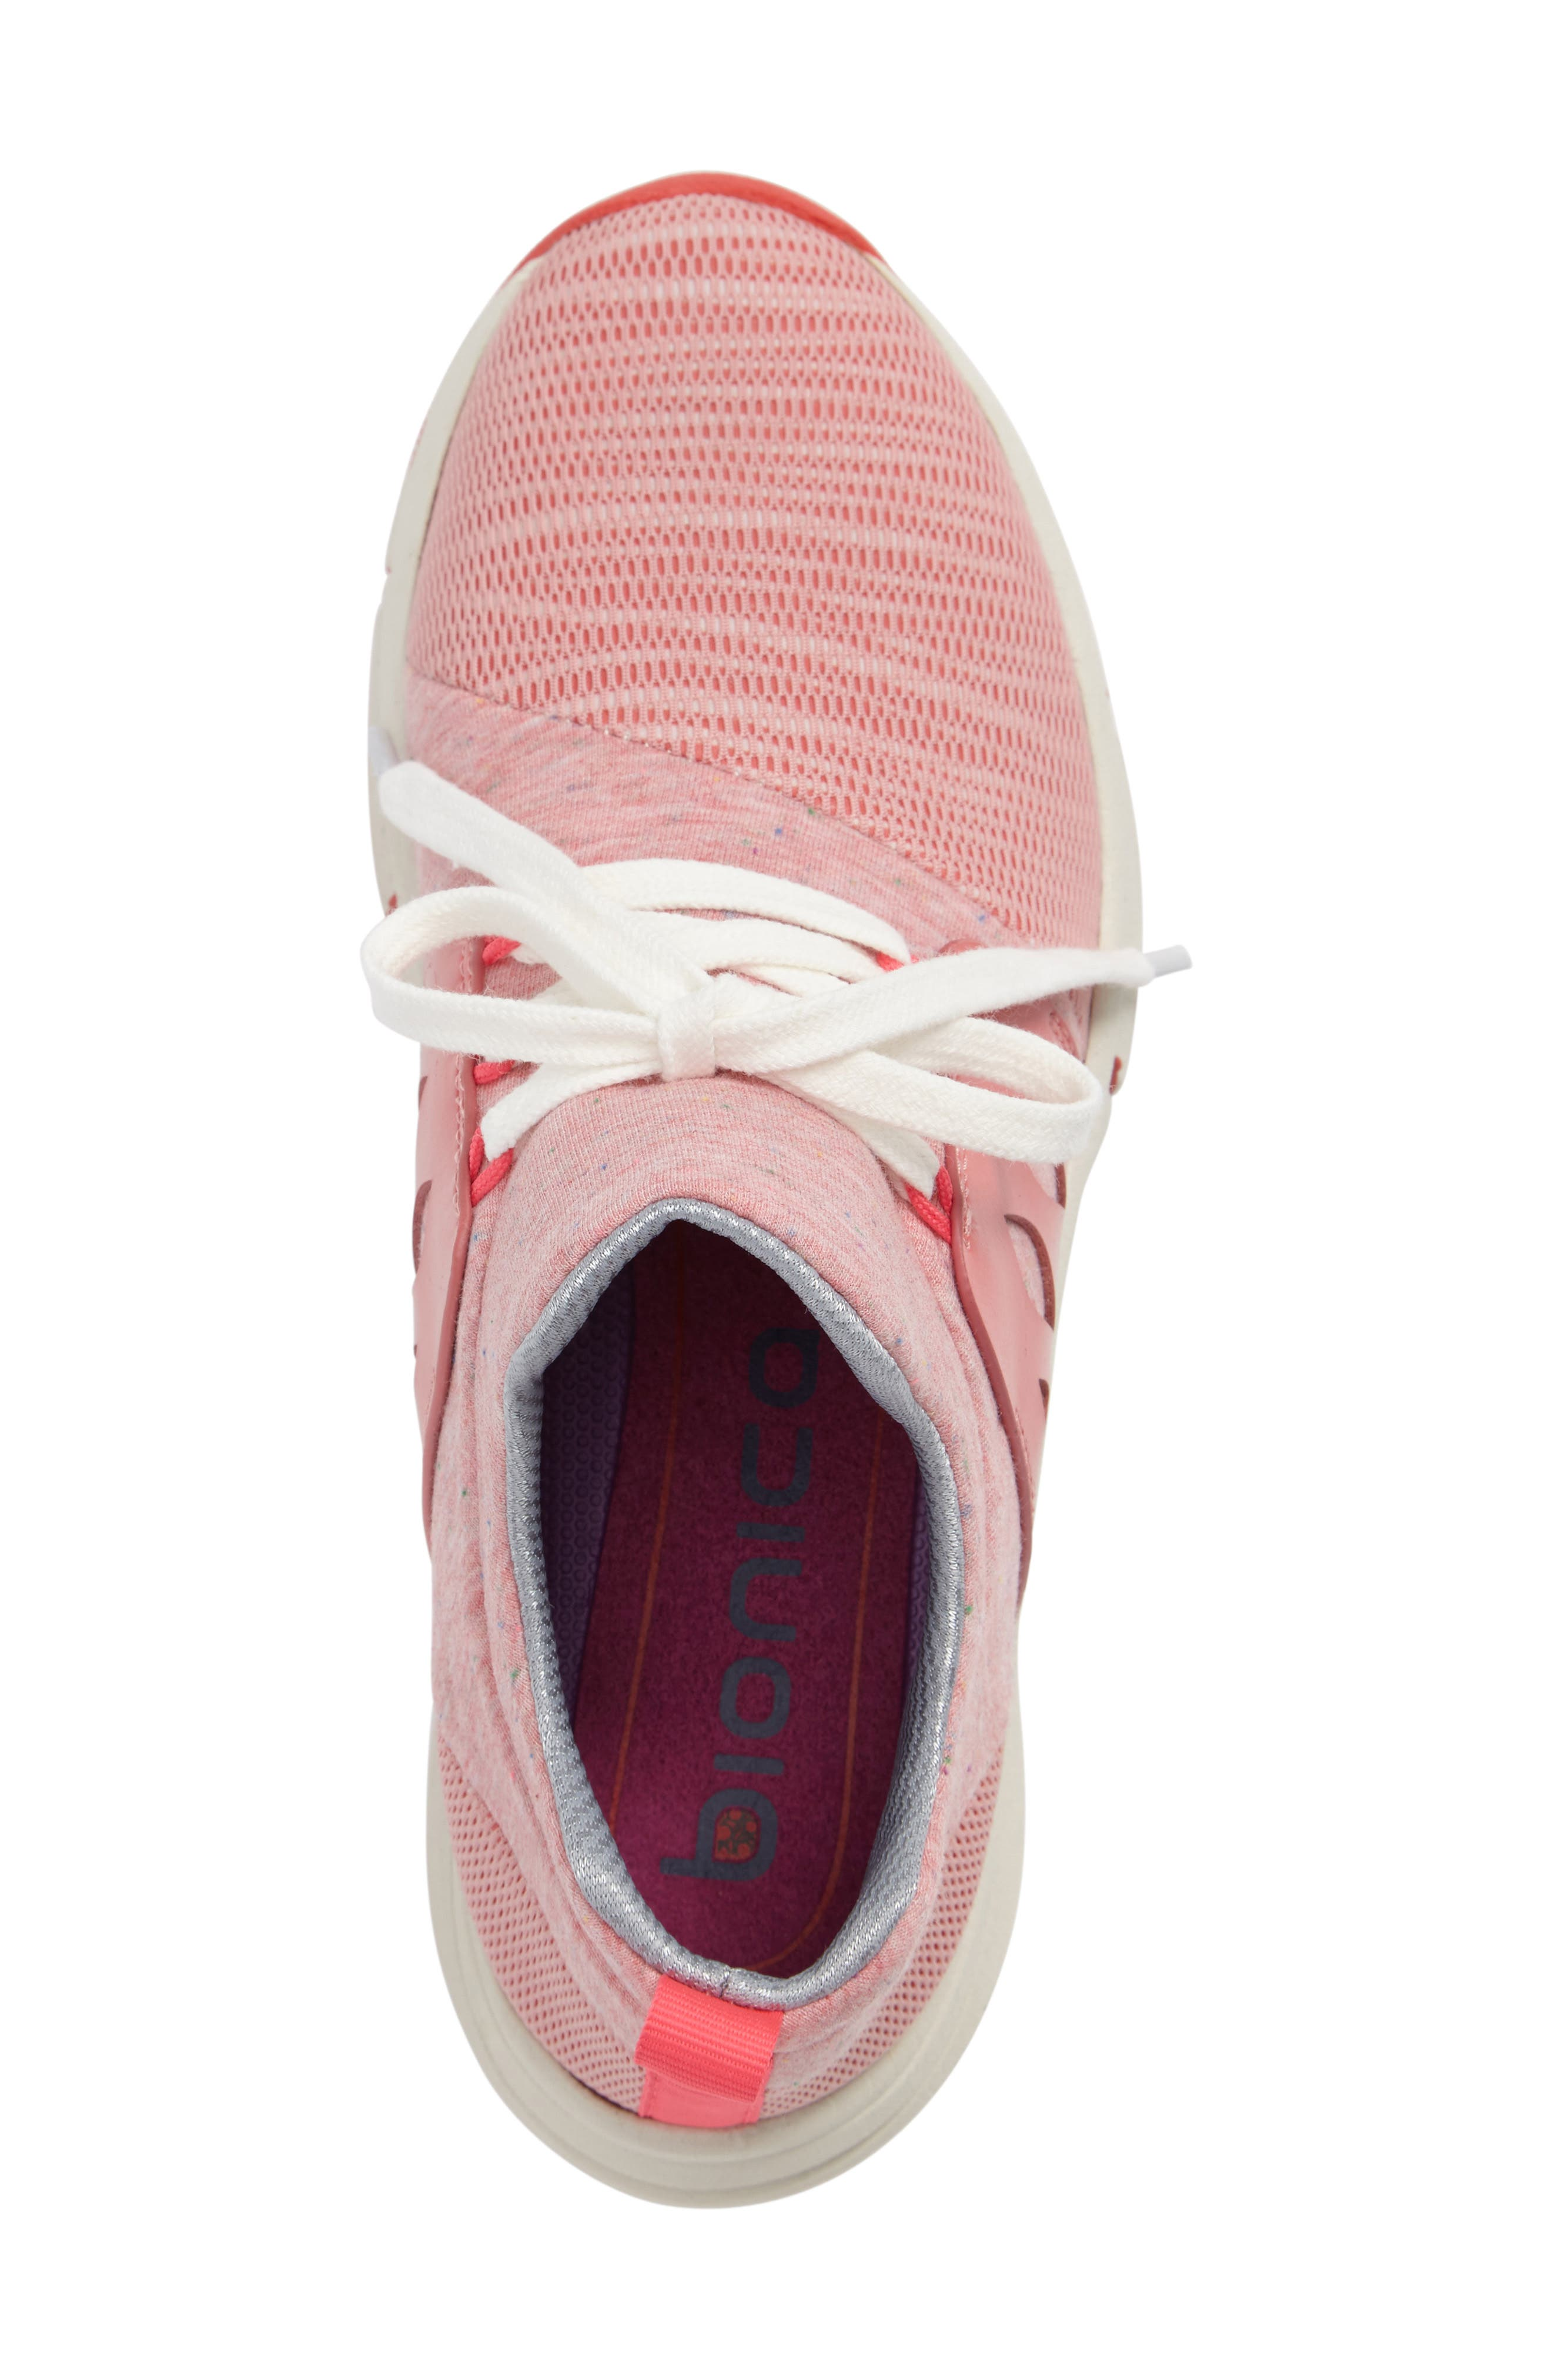 Ordell Sneaker,                             Alternate thumbnail 3, color,                             PINK FABRIC